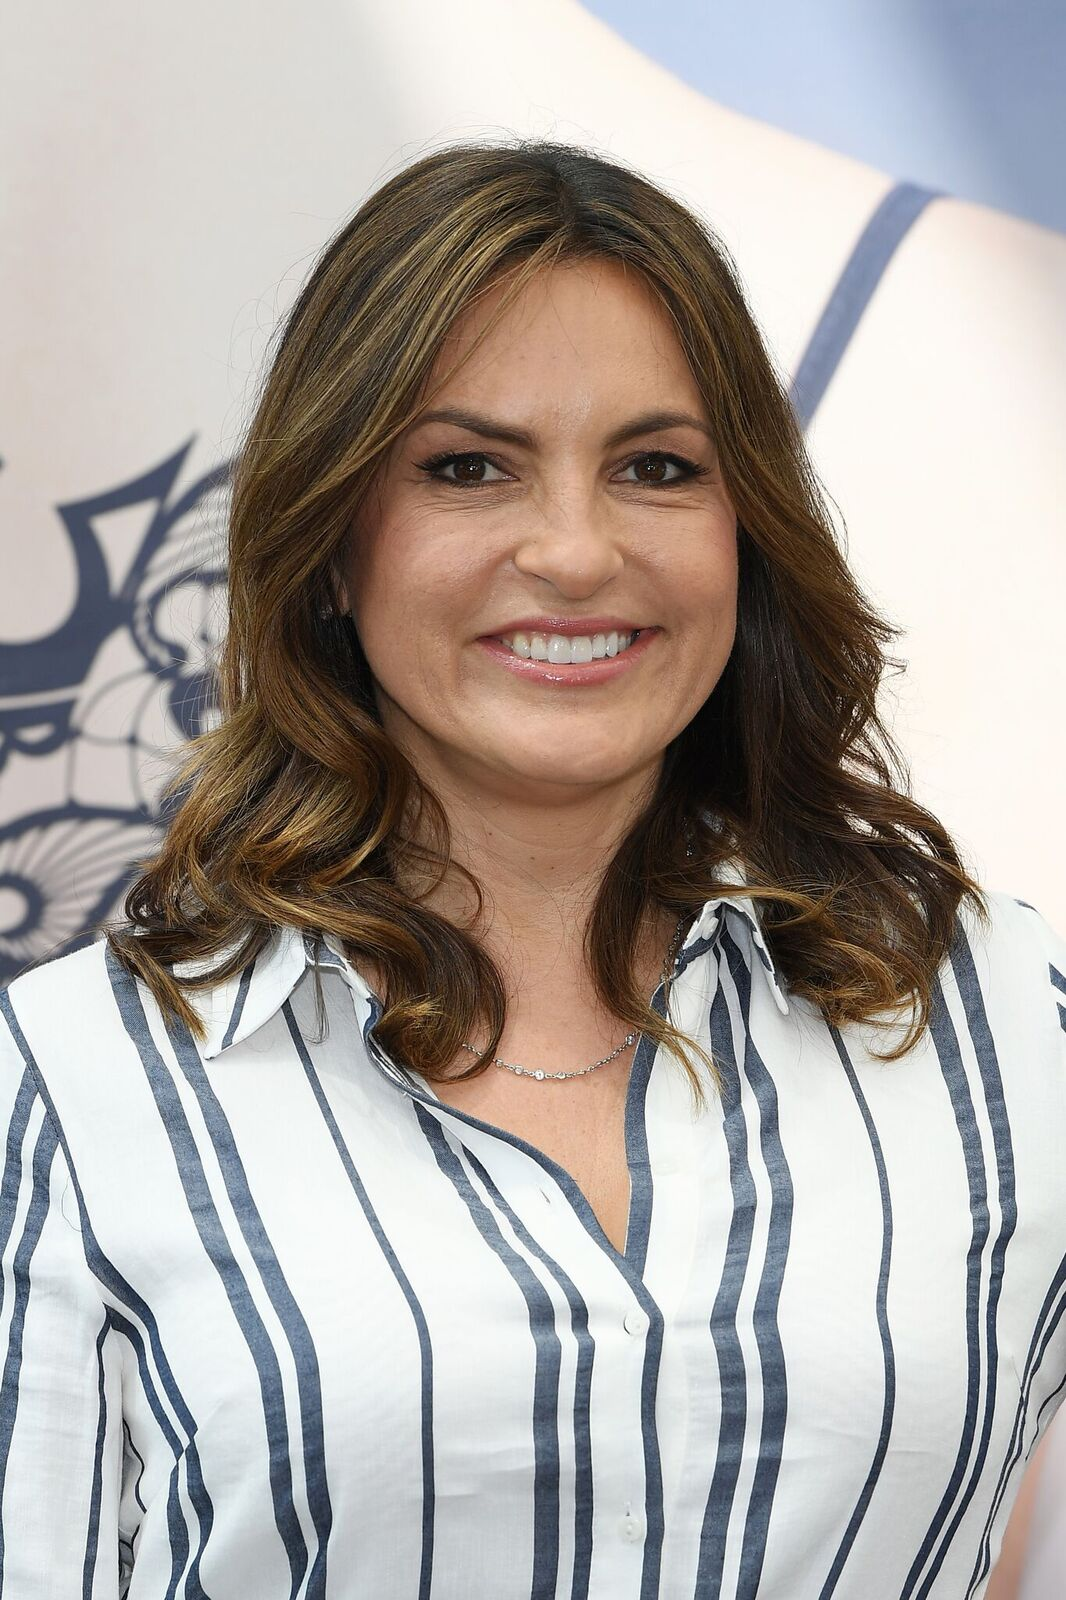 """Mariska Hargitay from the serie """"Law & Order : SVU"""" attends a photocall during the 58th Monte Carlo TV Festival on June 17, 2018 in Monte-Carlo, Monaco 